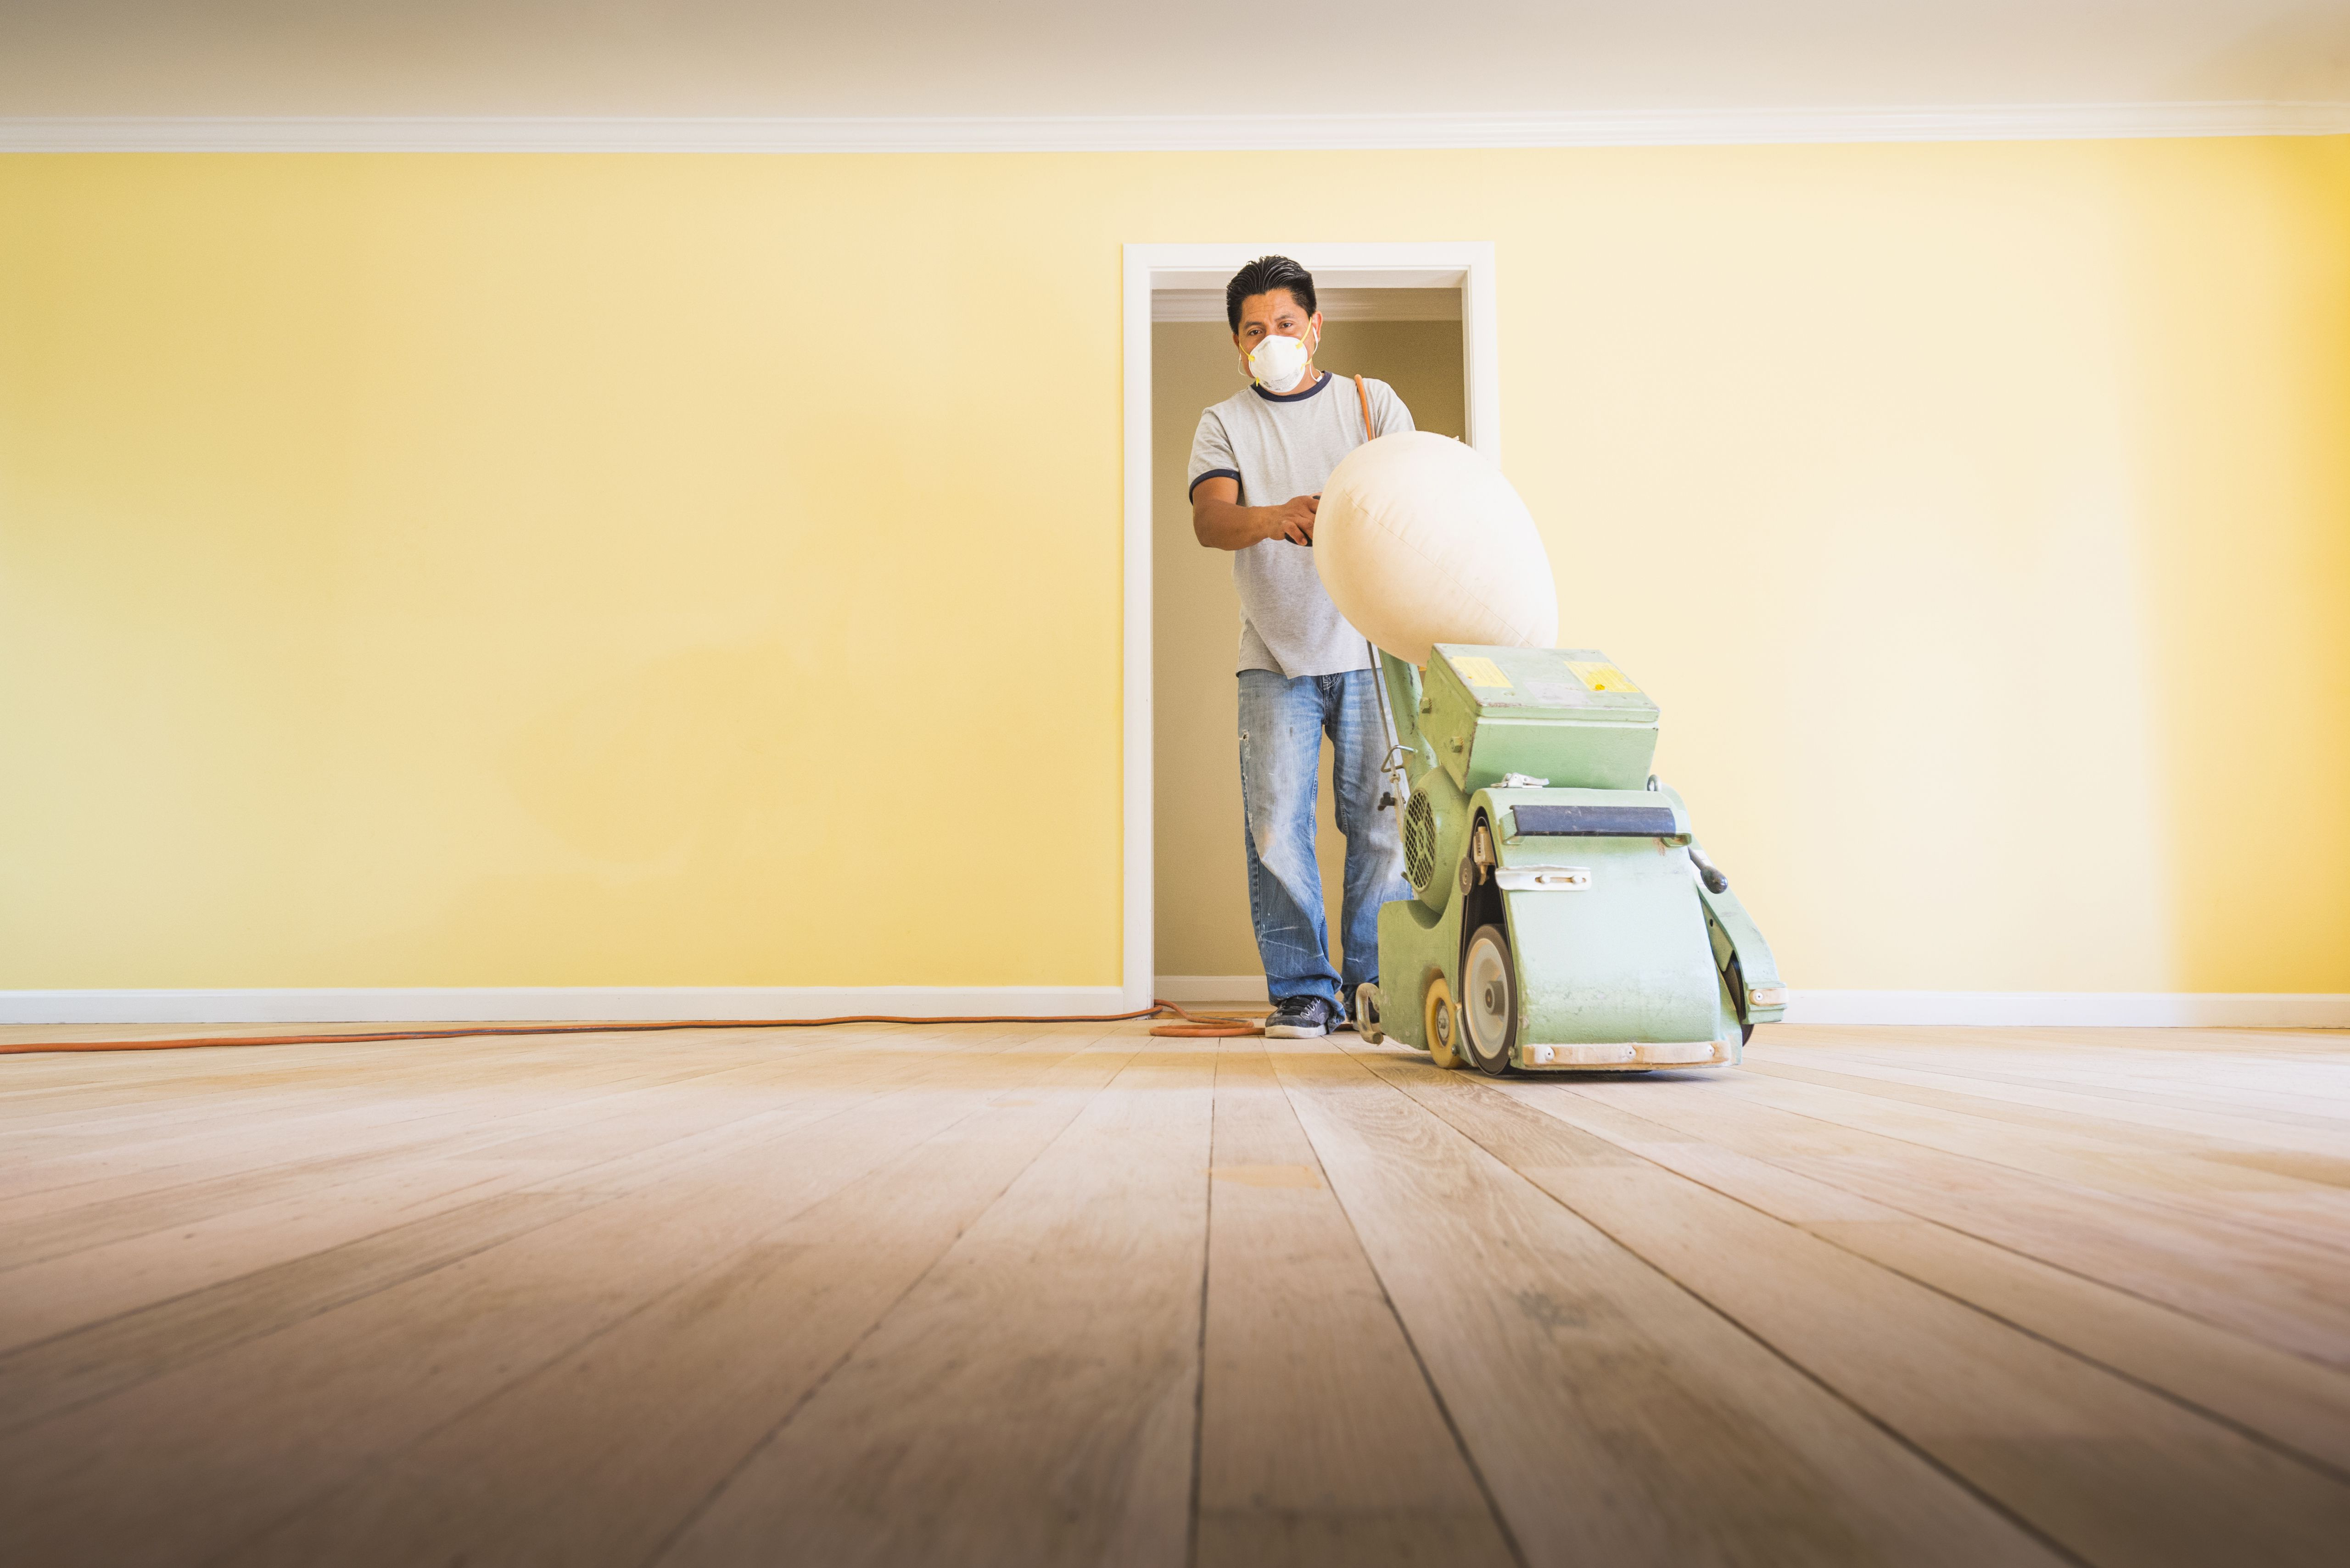 hardwood floor care and cleaning of should you paint walls or refinish floors first inside floorsandingafterpainting 5a8f08dfae9ab80037d9d878